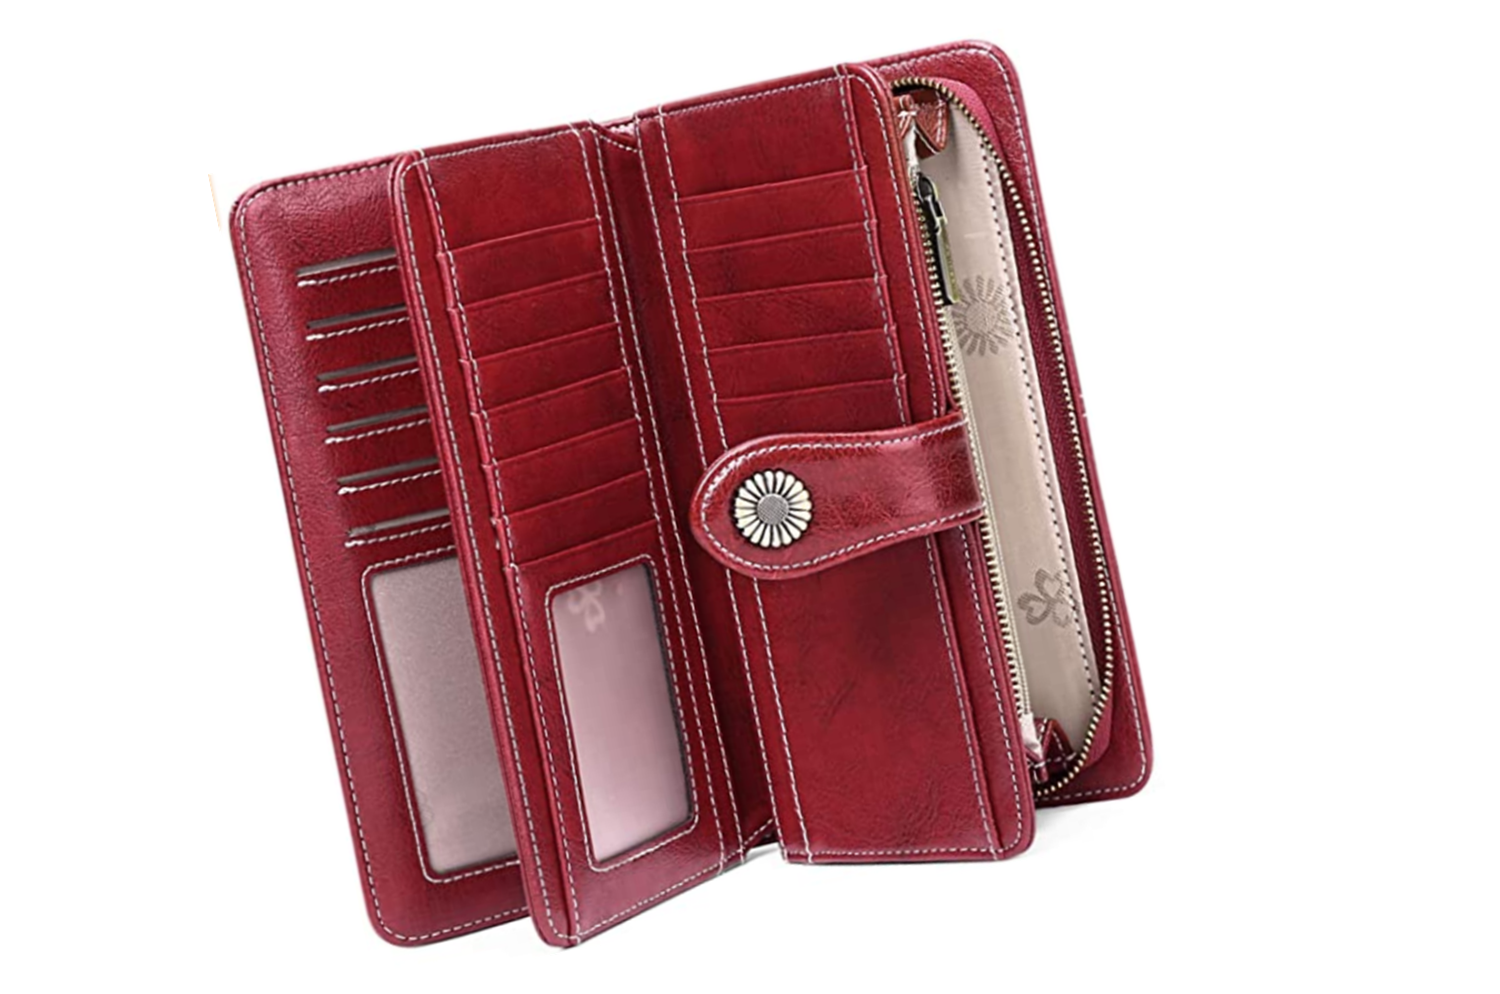 2 POST Access Money womens rfid wallet